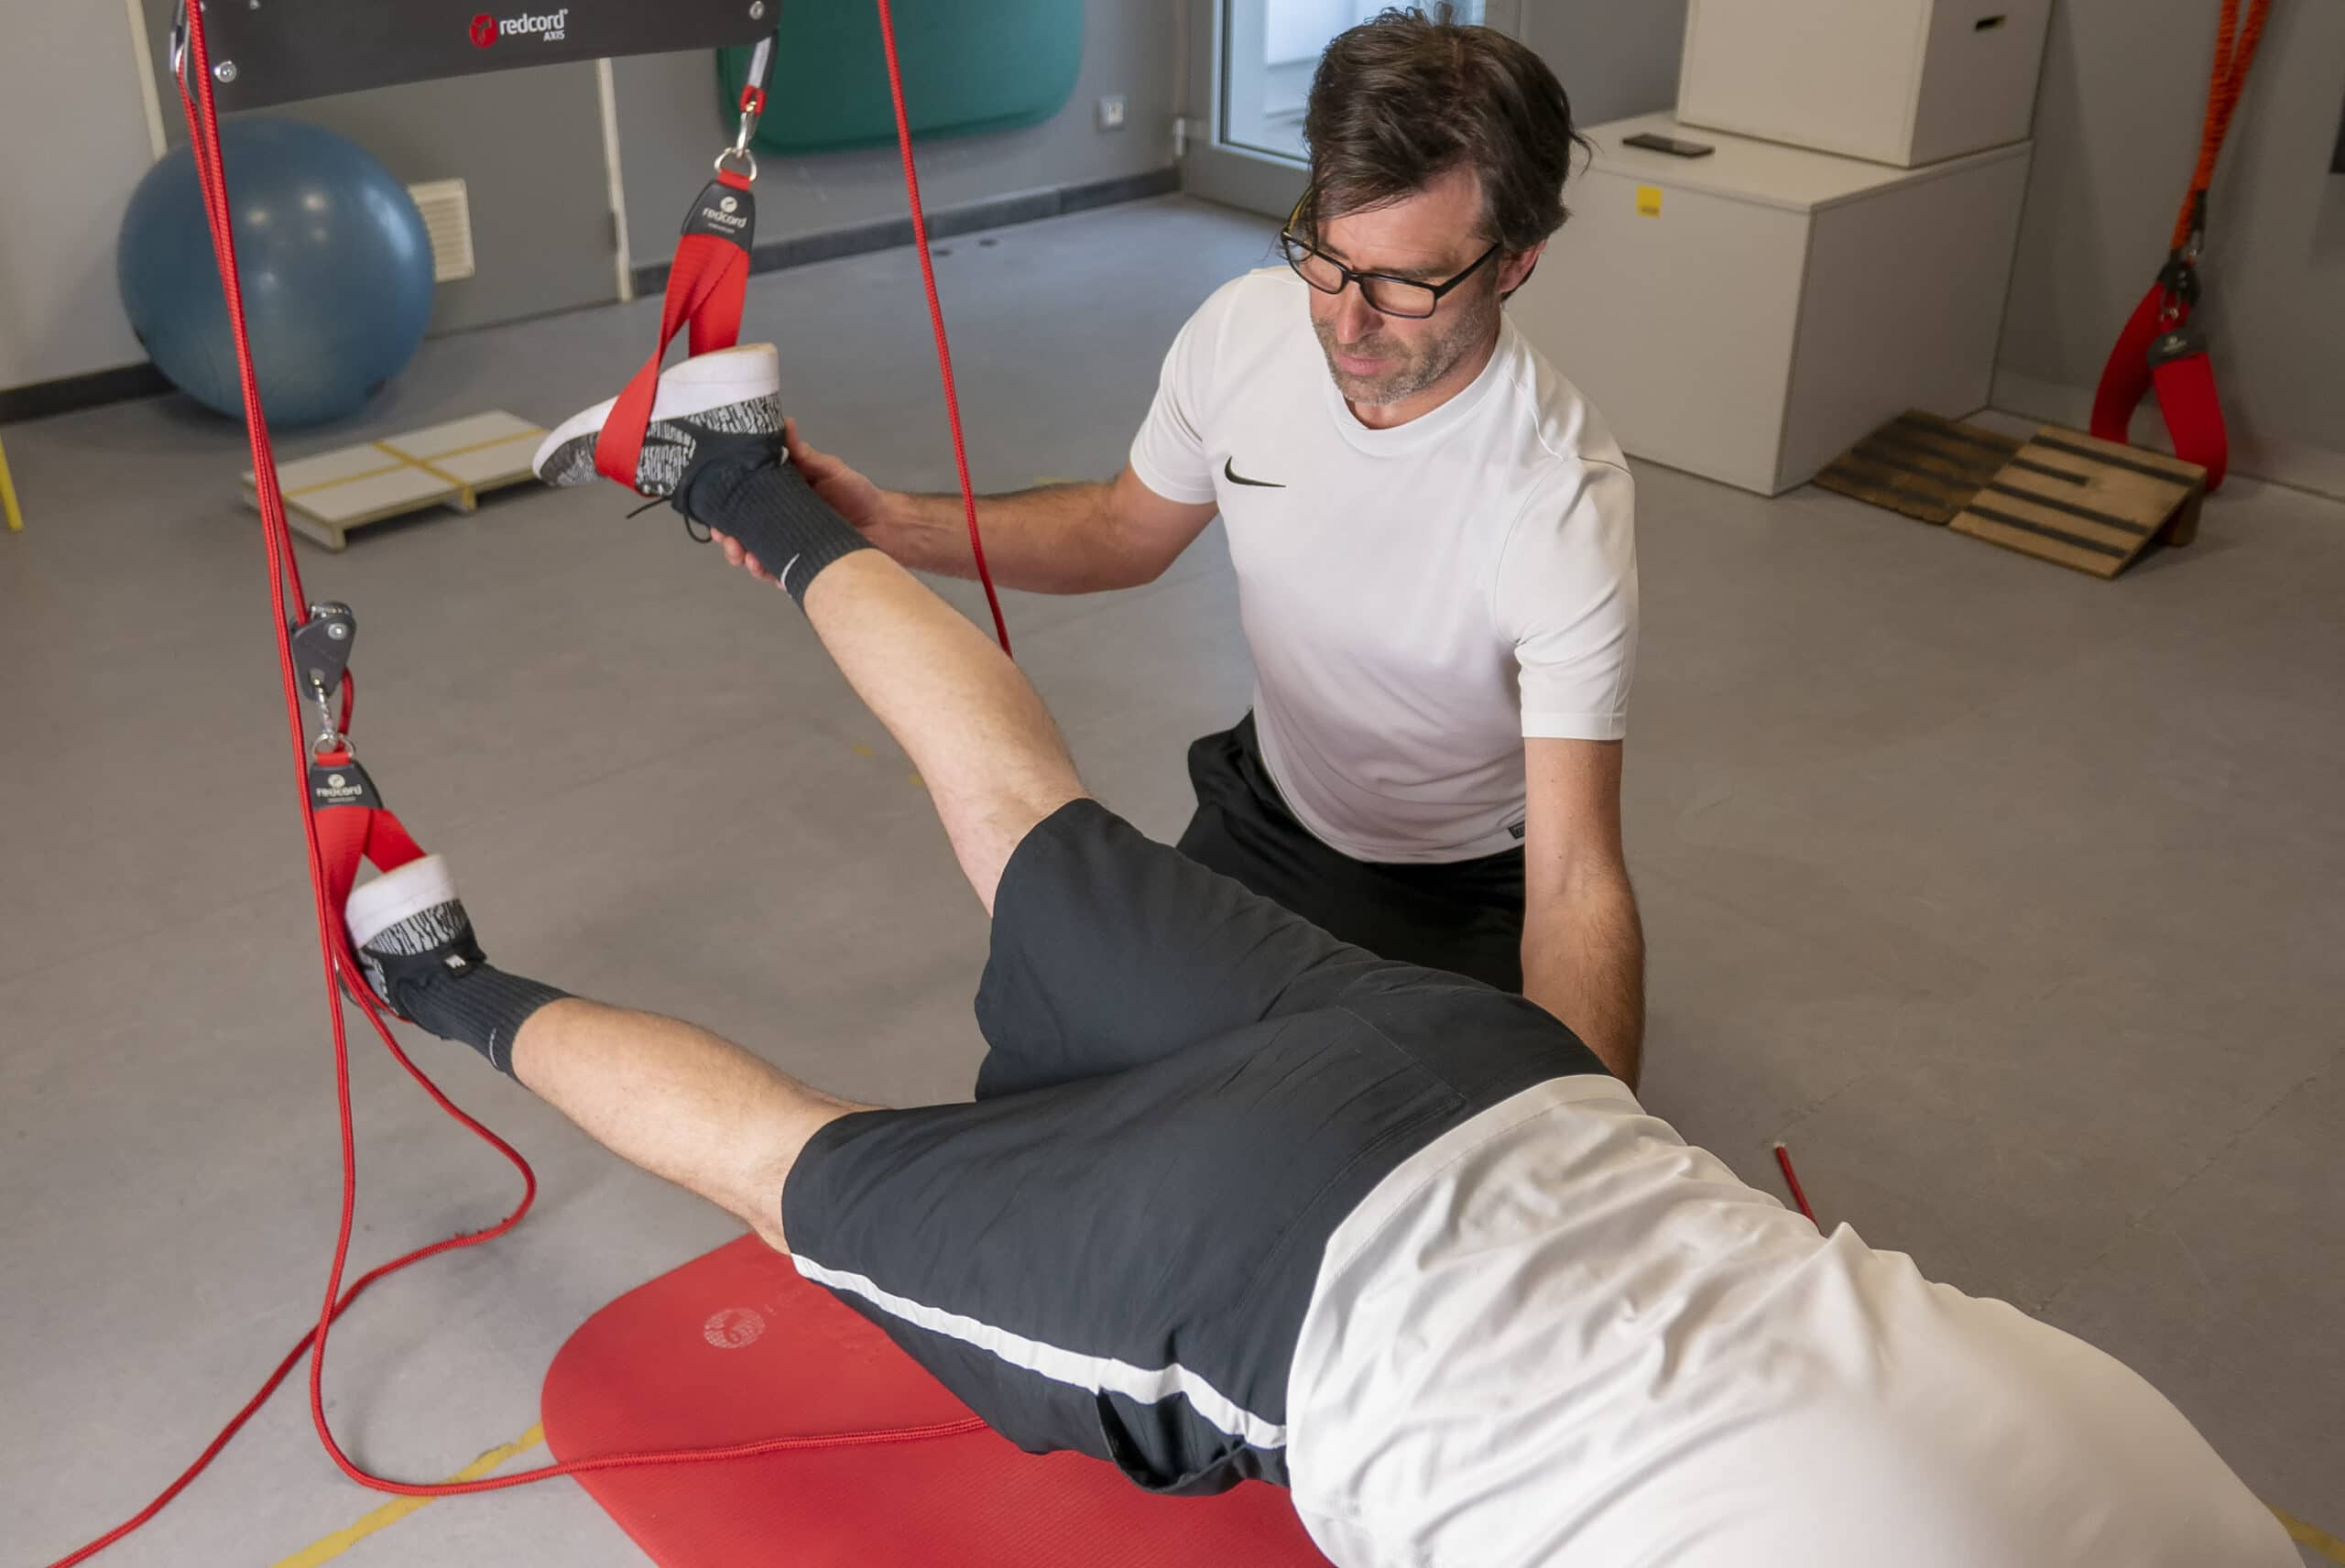 Redcord | Rehab and Prevention | Praktijk voor kinesitherapie, personal coaching, blessurepreventie Wetteren